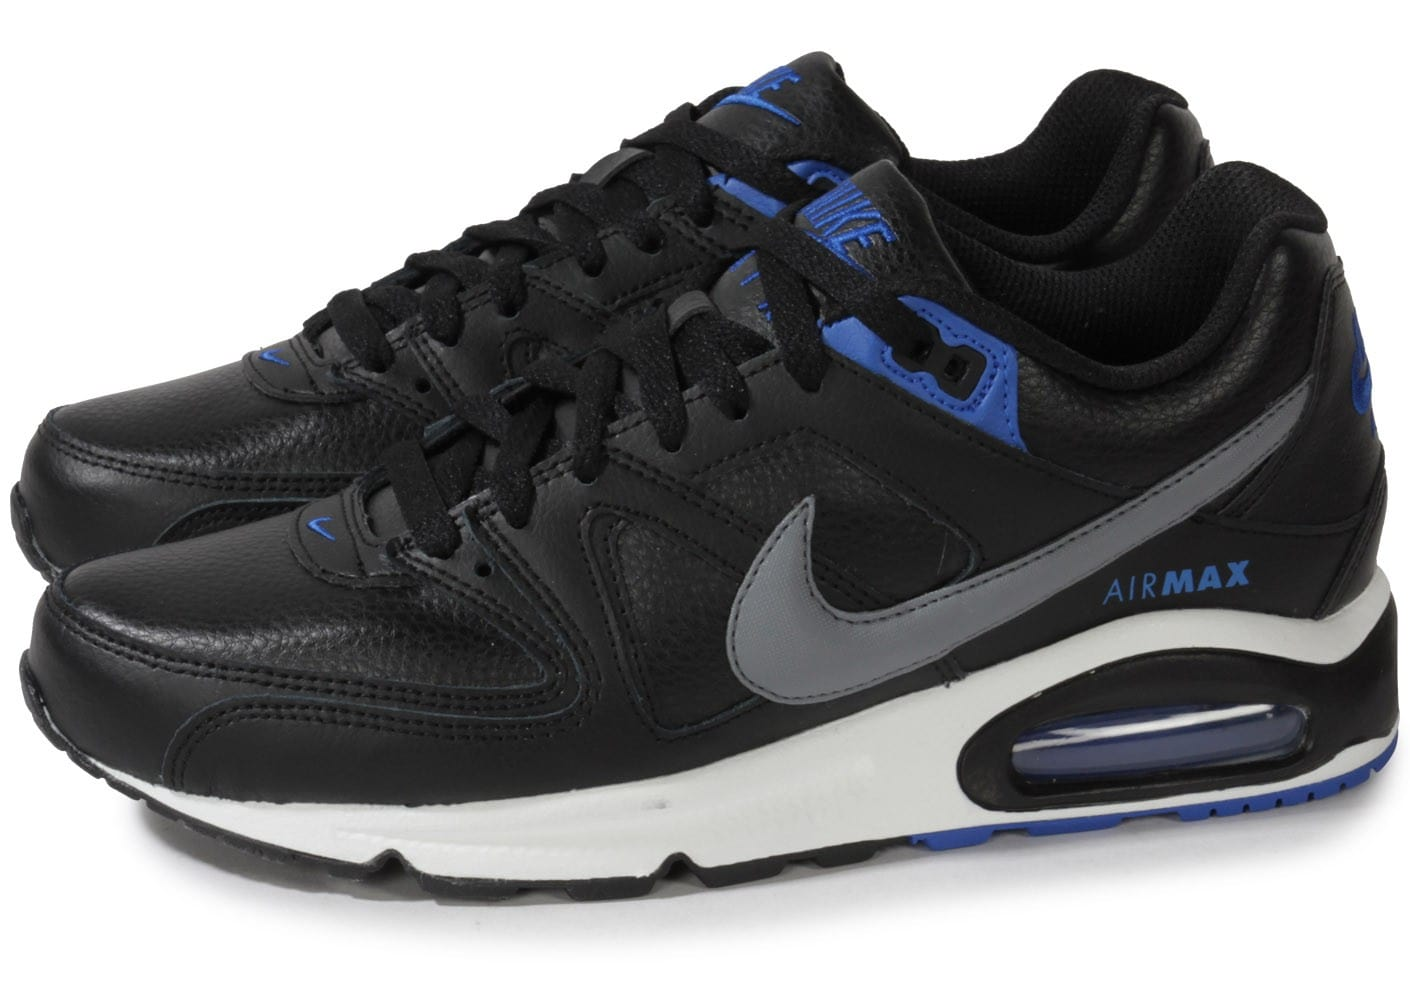 nike air max command cuir noire chaussures homme chausport. Black Bedroom Furniture Sets. Home Design Ideas